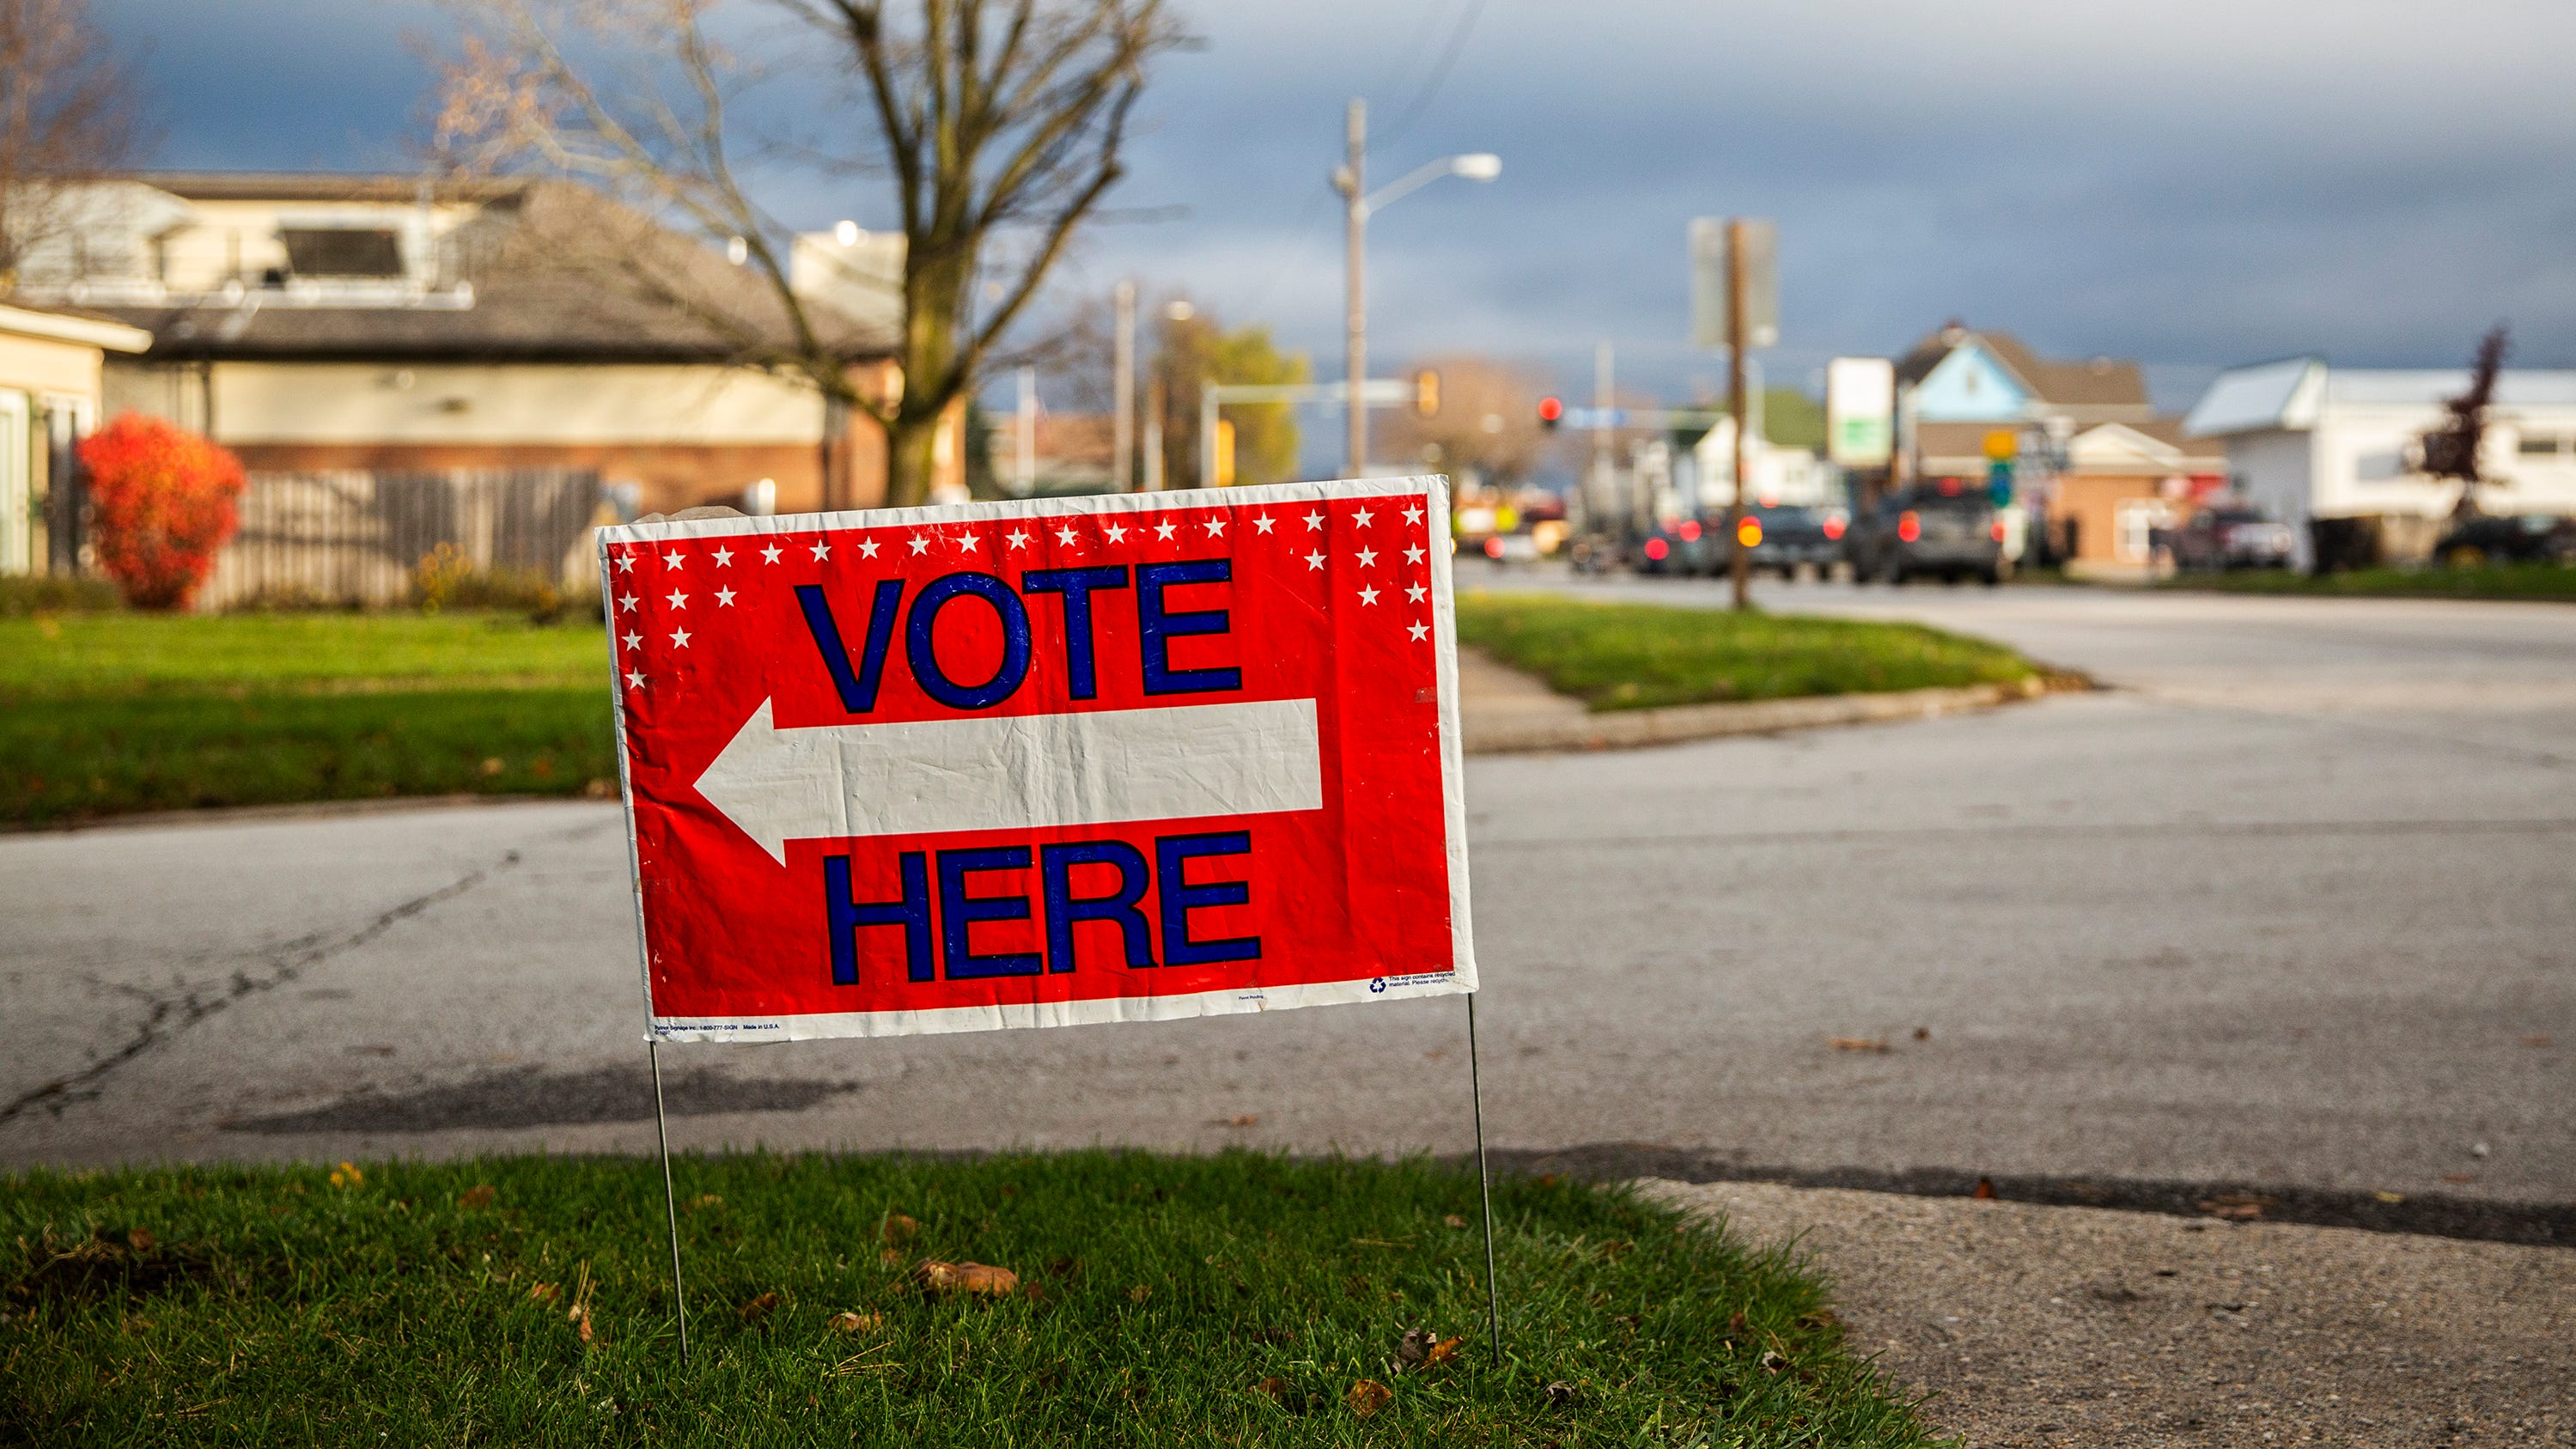 A Vote Here sign sits on a corner in Osceola pointing toward the United Methodist Church, one of the polling places in the city, on Tuesday, Nov. 6, 2018. Polls in Iowa are open from 7:00AM to 9:00PM.